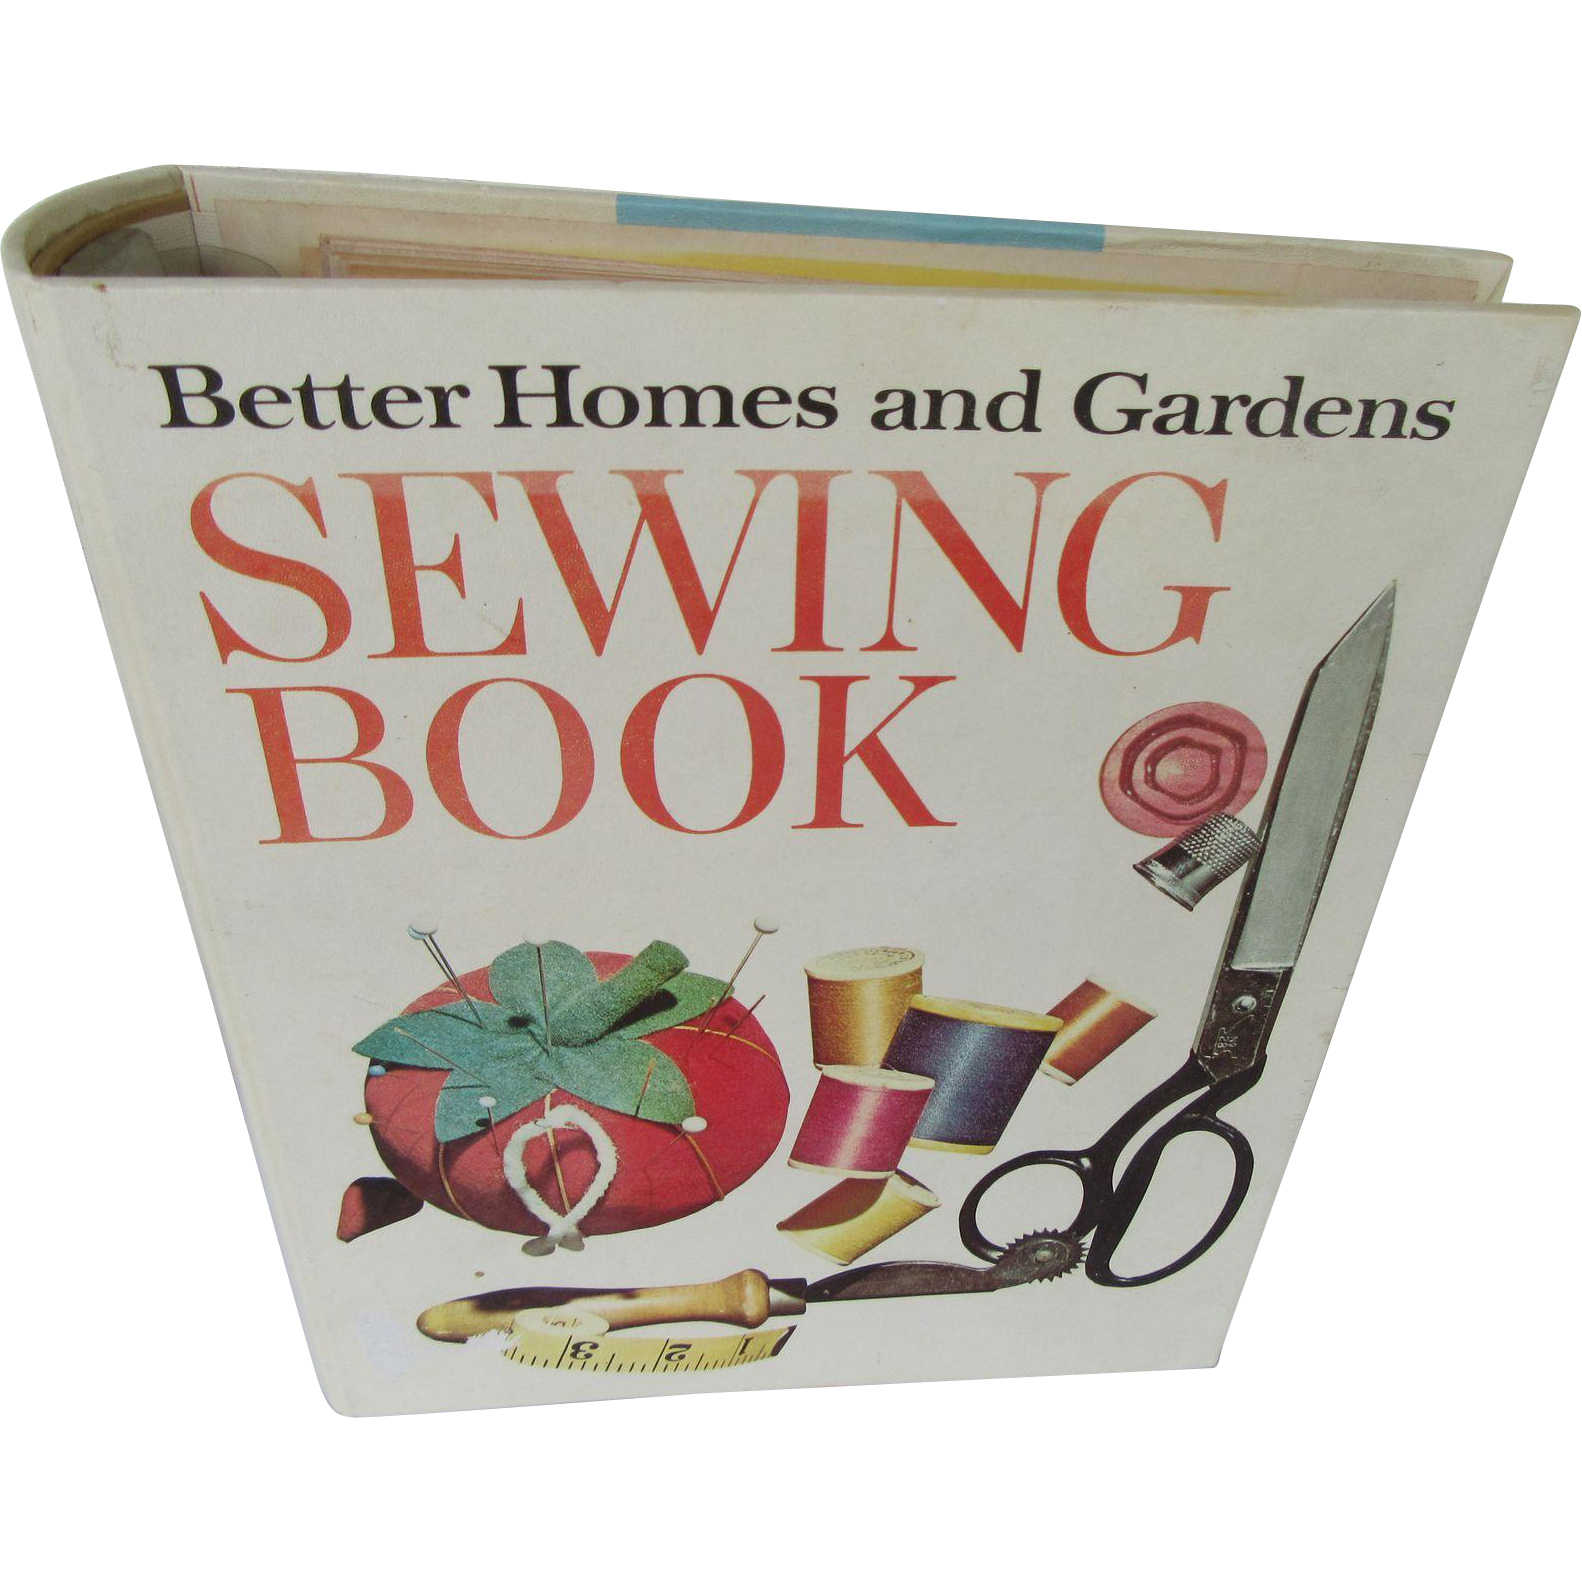 Better homes and gardens sewing book for beginner to for Better homes and gardens episodes